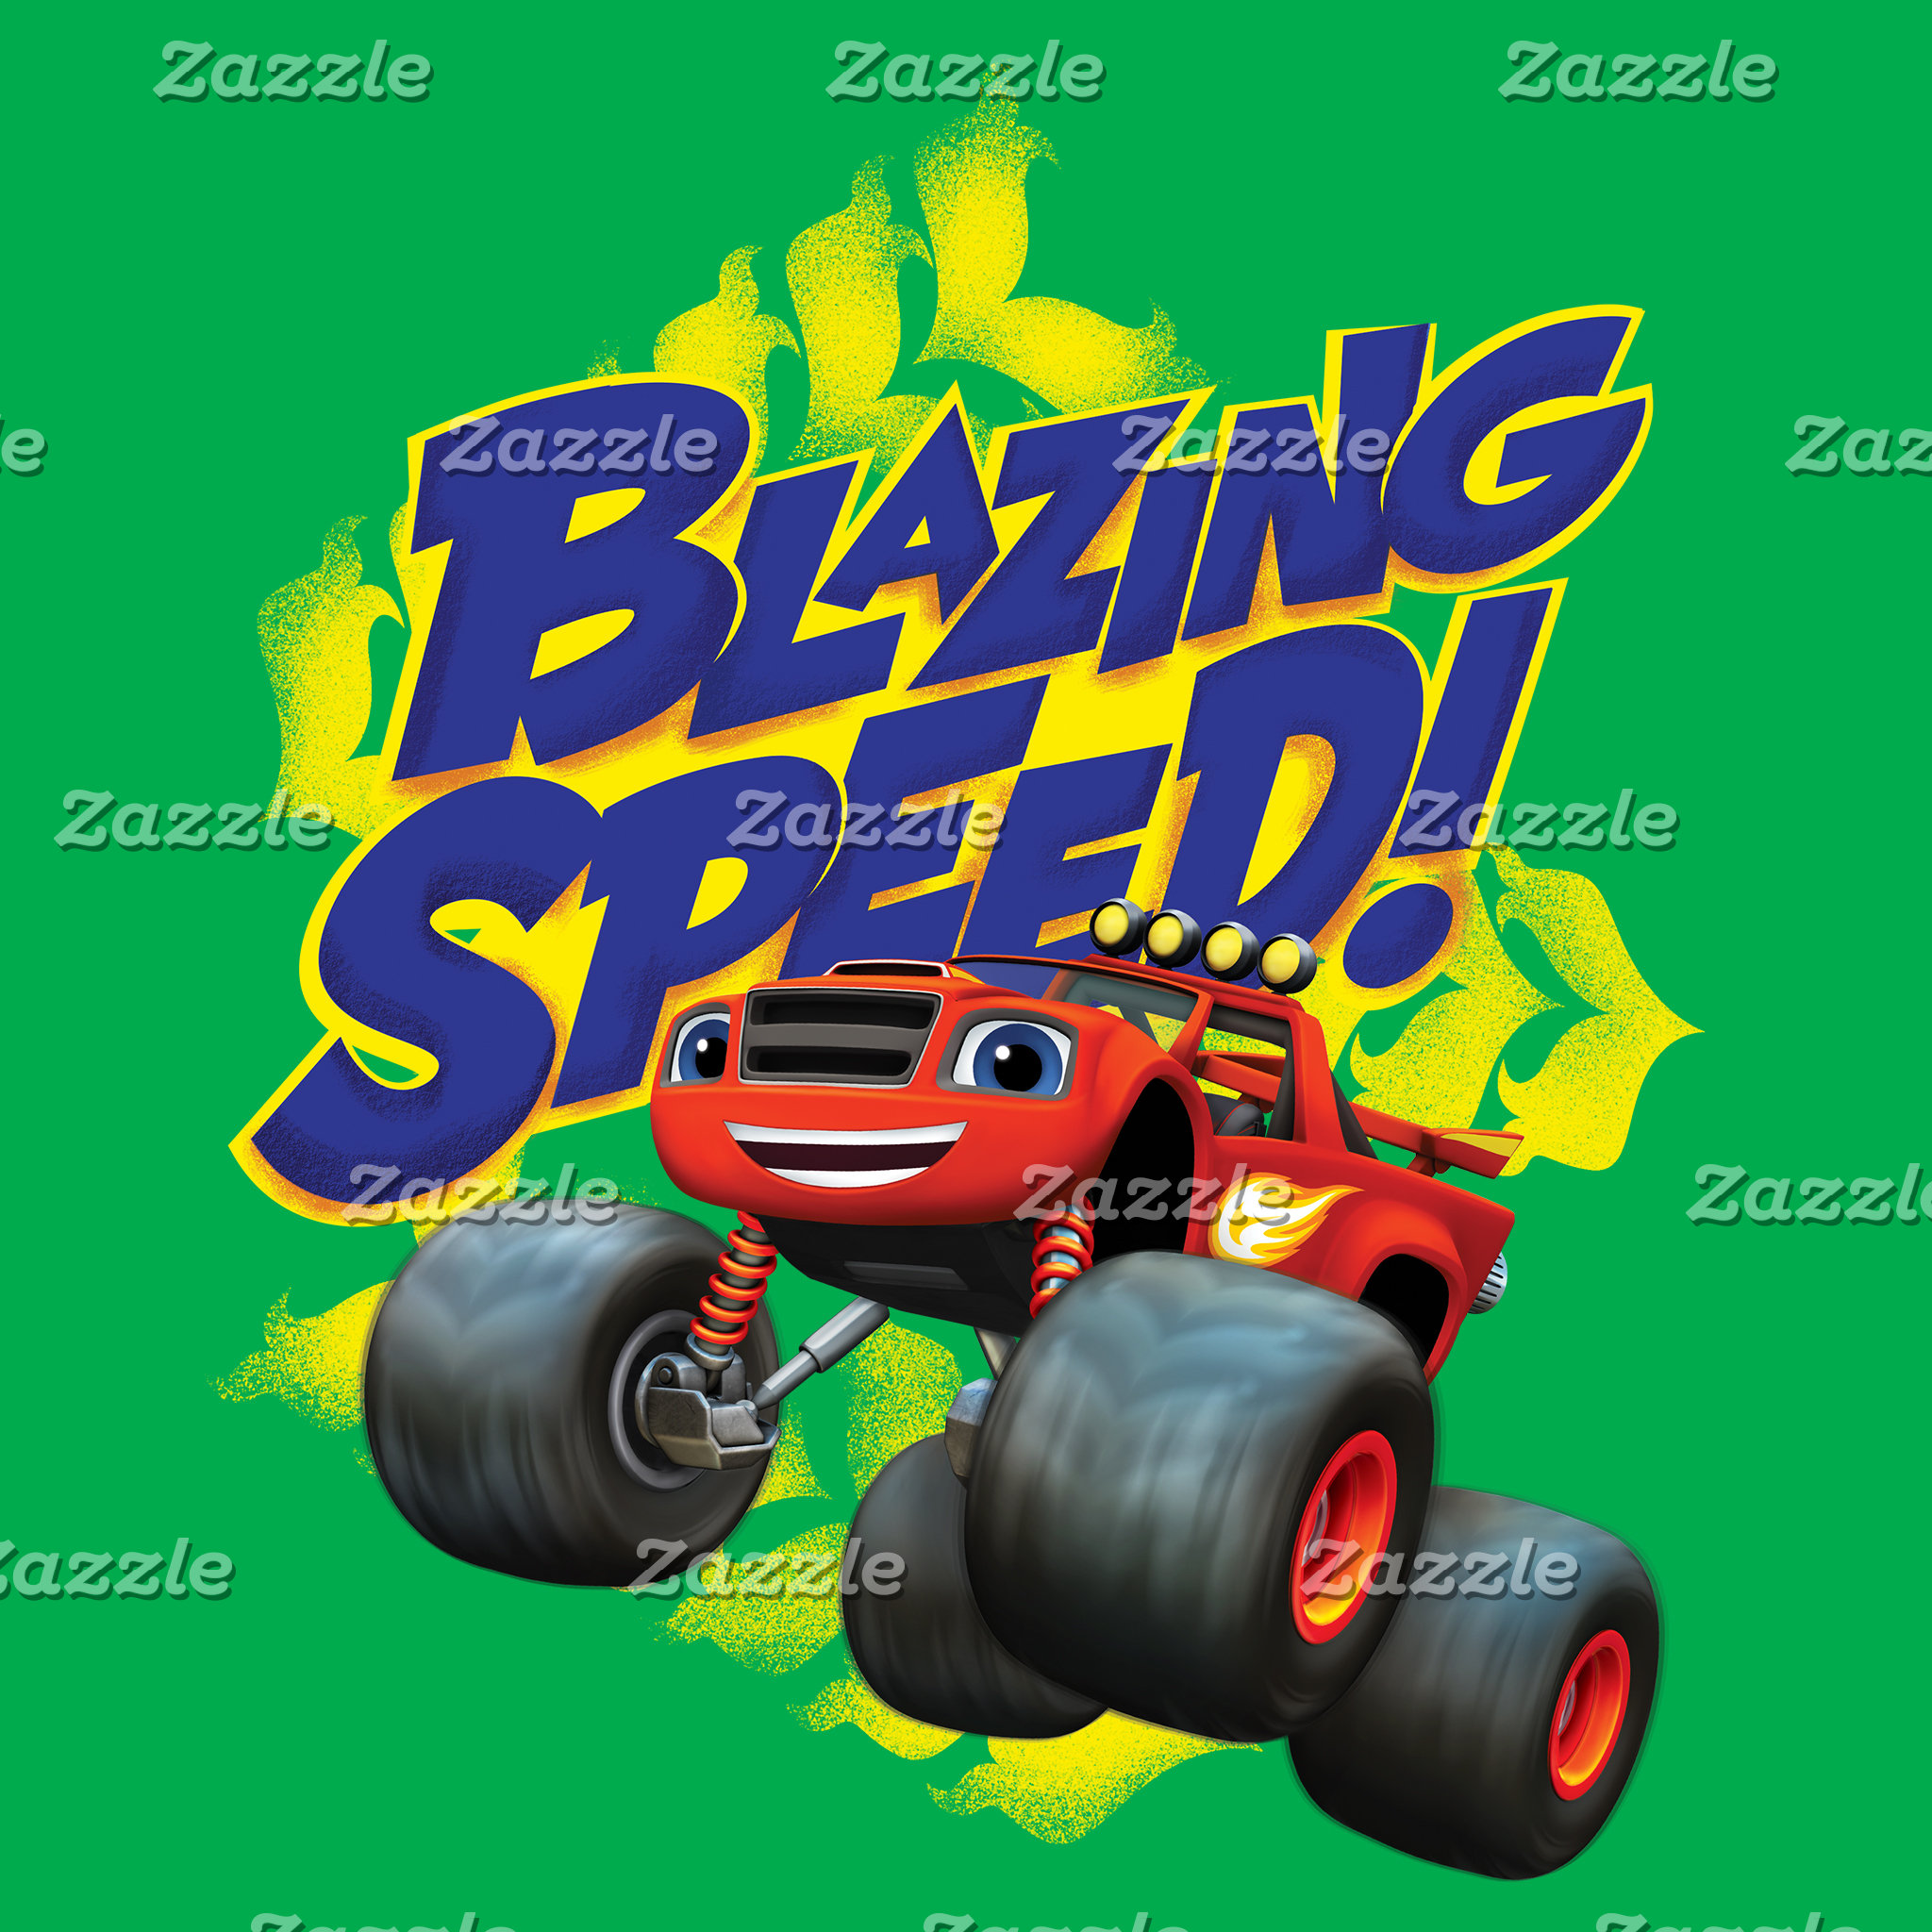 Blazing Speed!